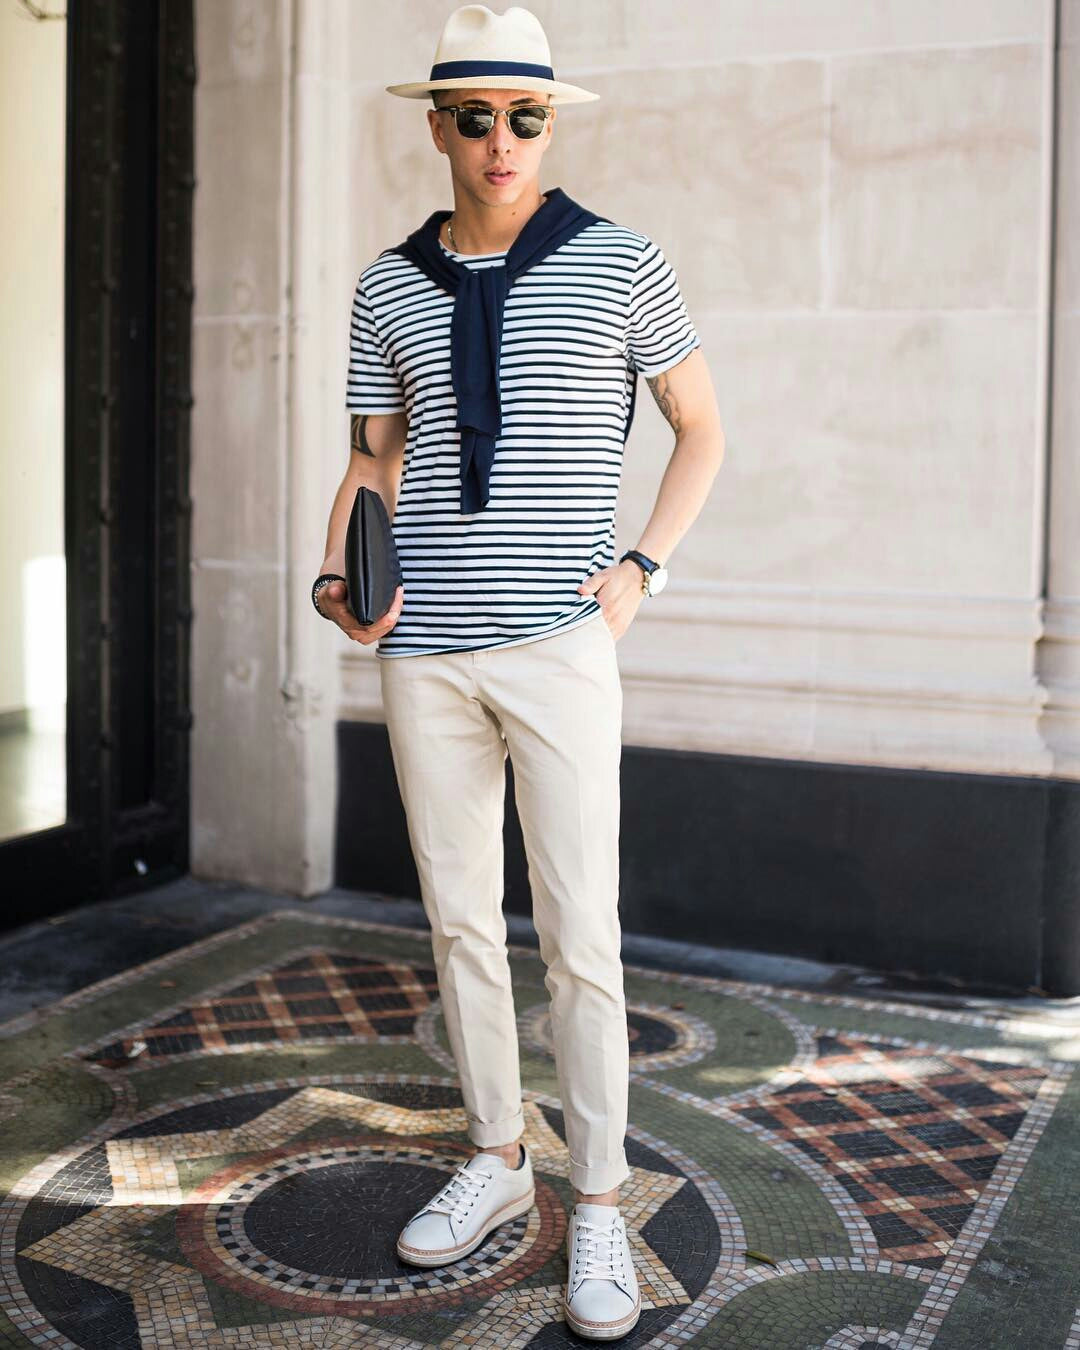 OUTFIT ideas for men